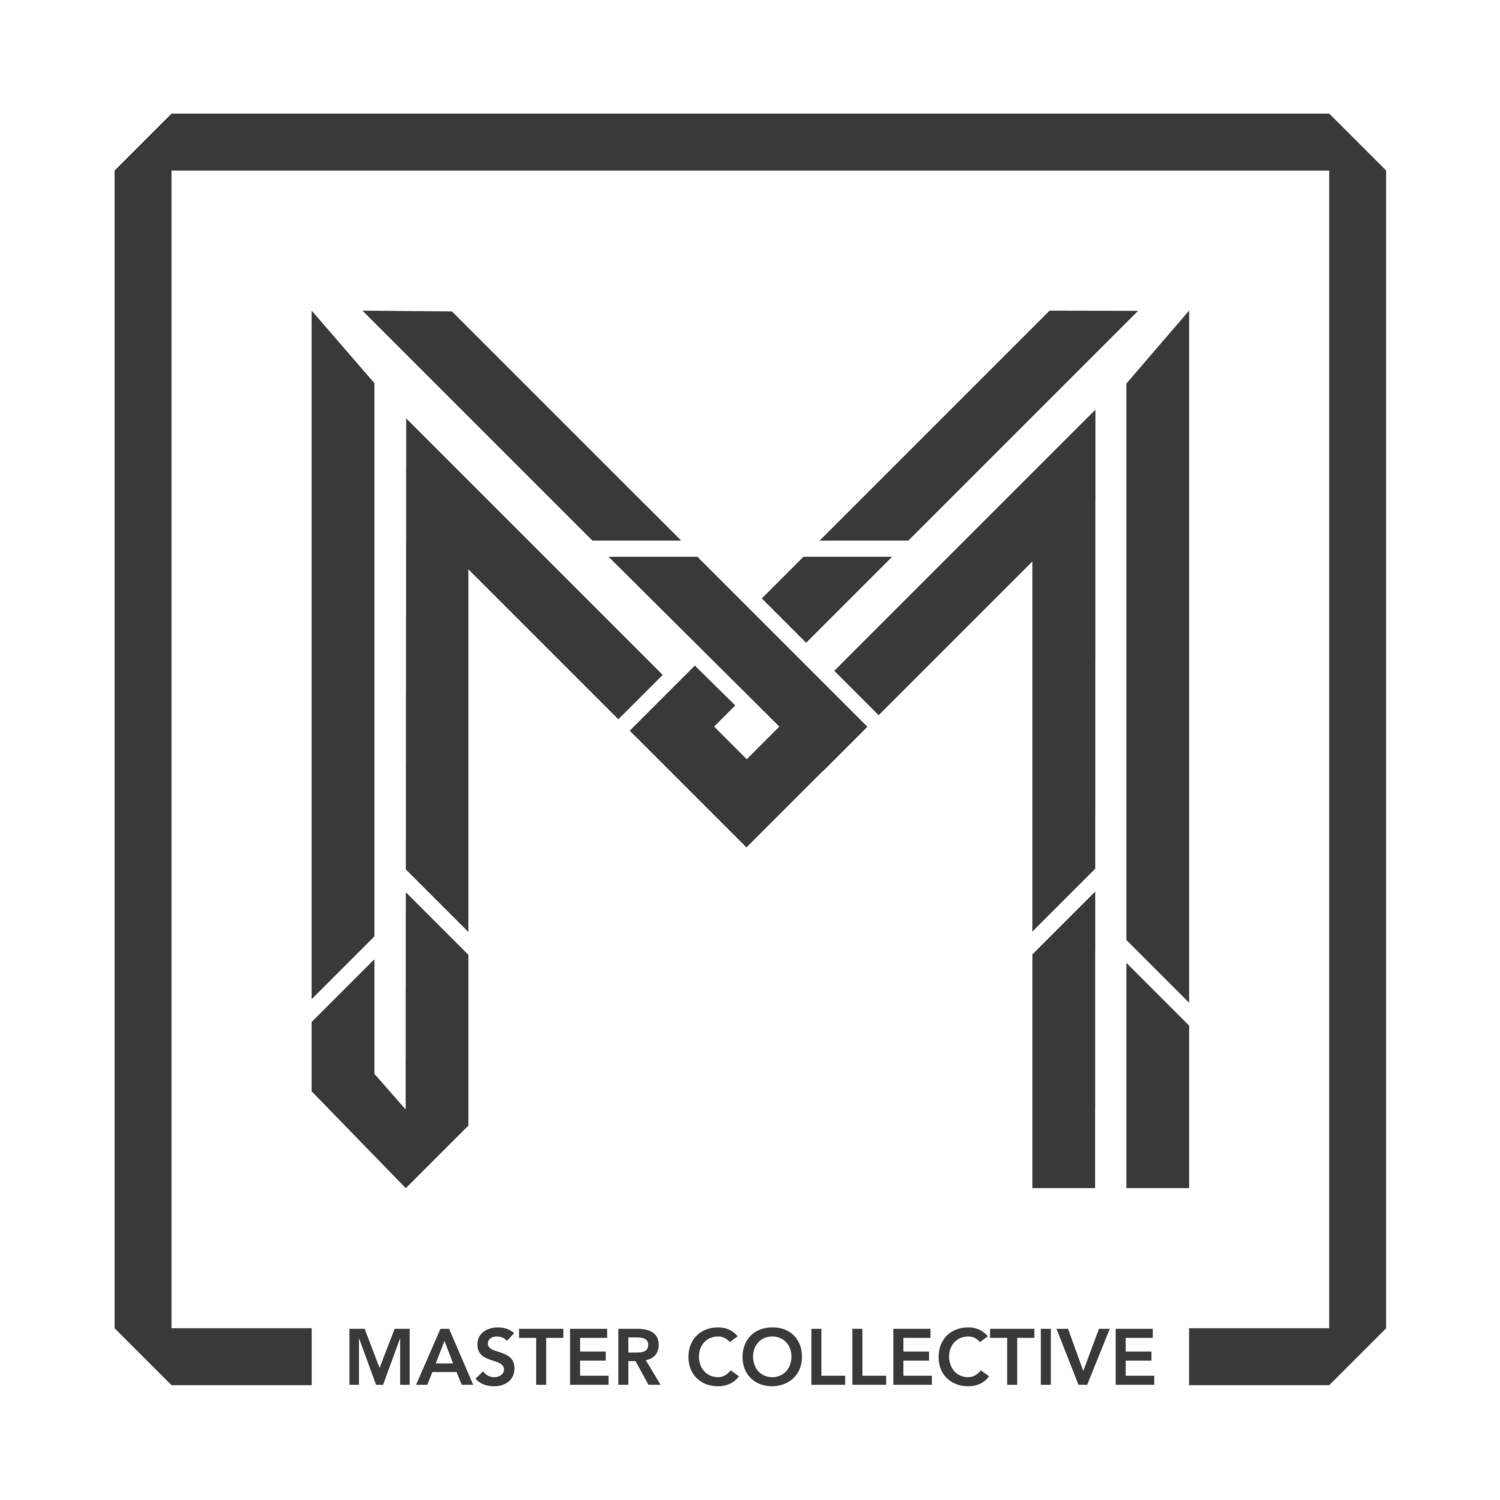 Master Collective